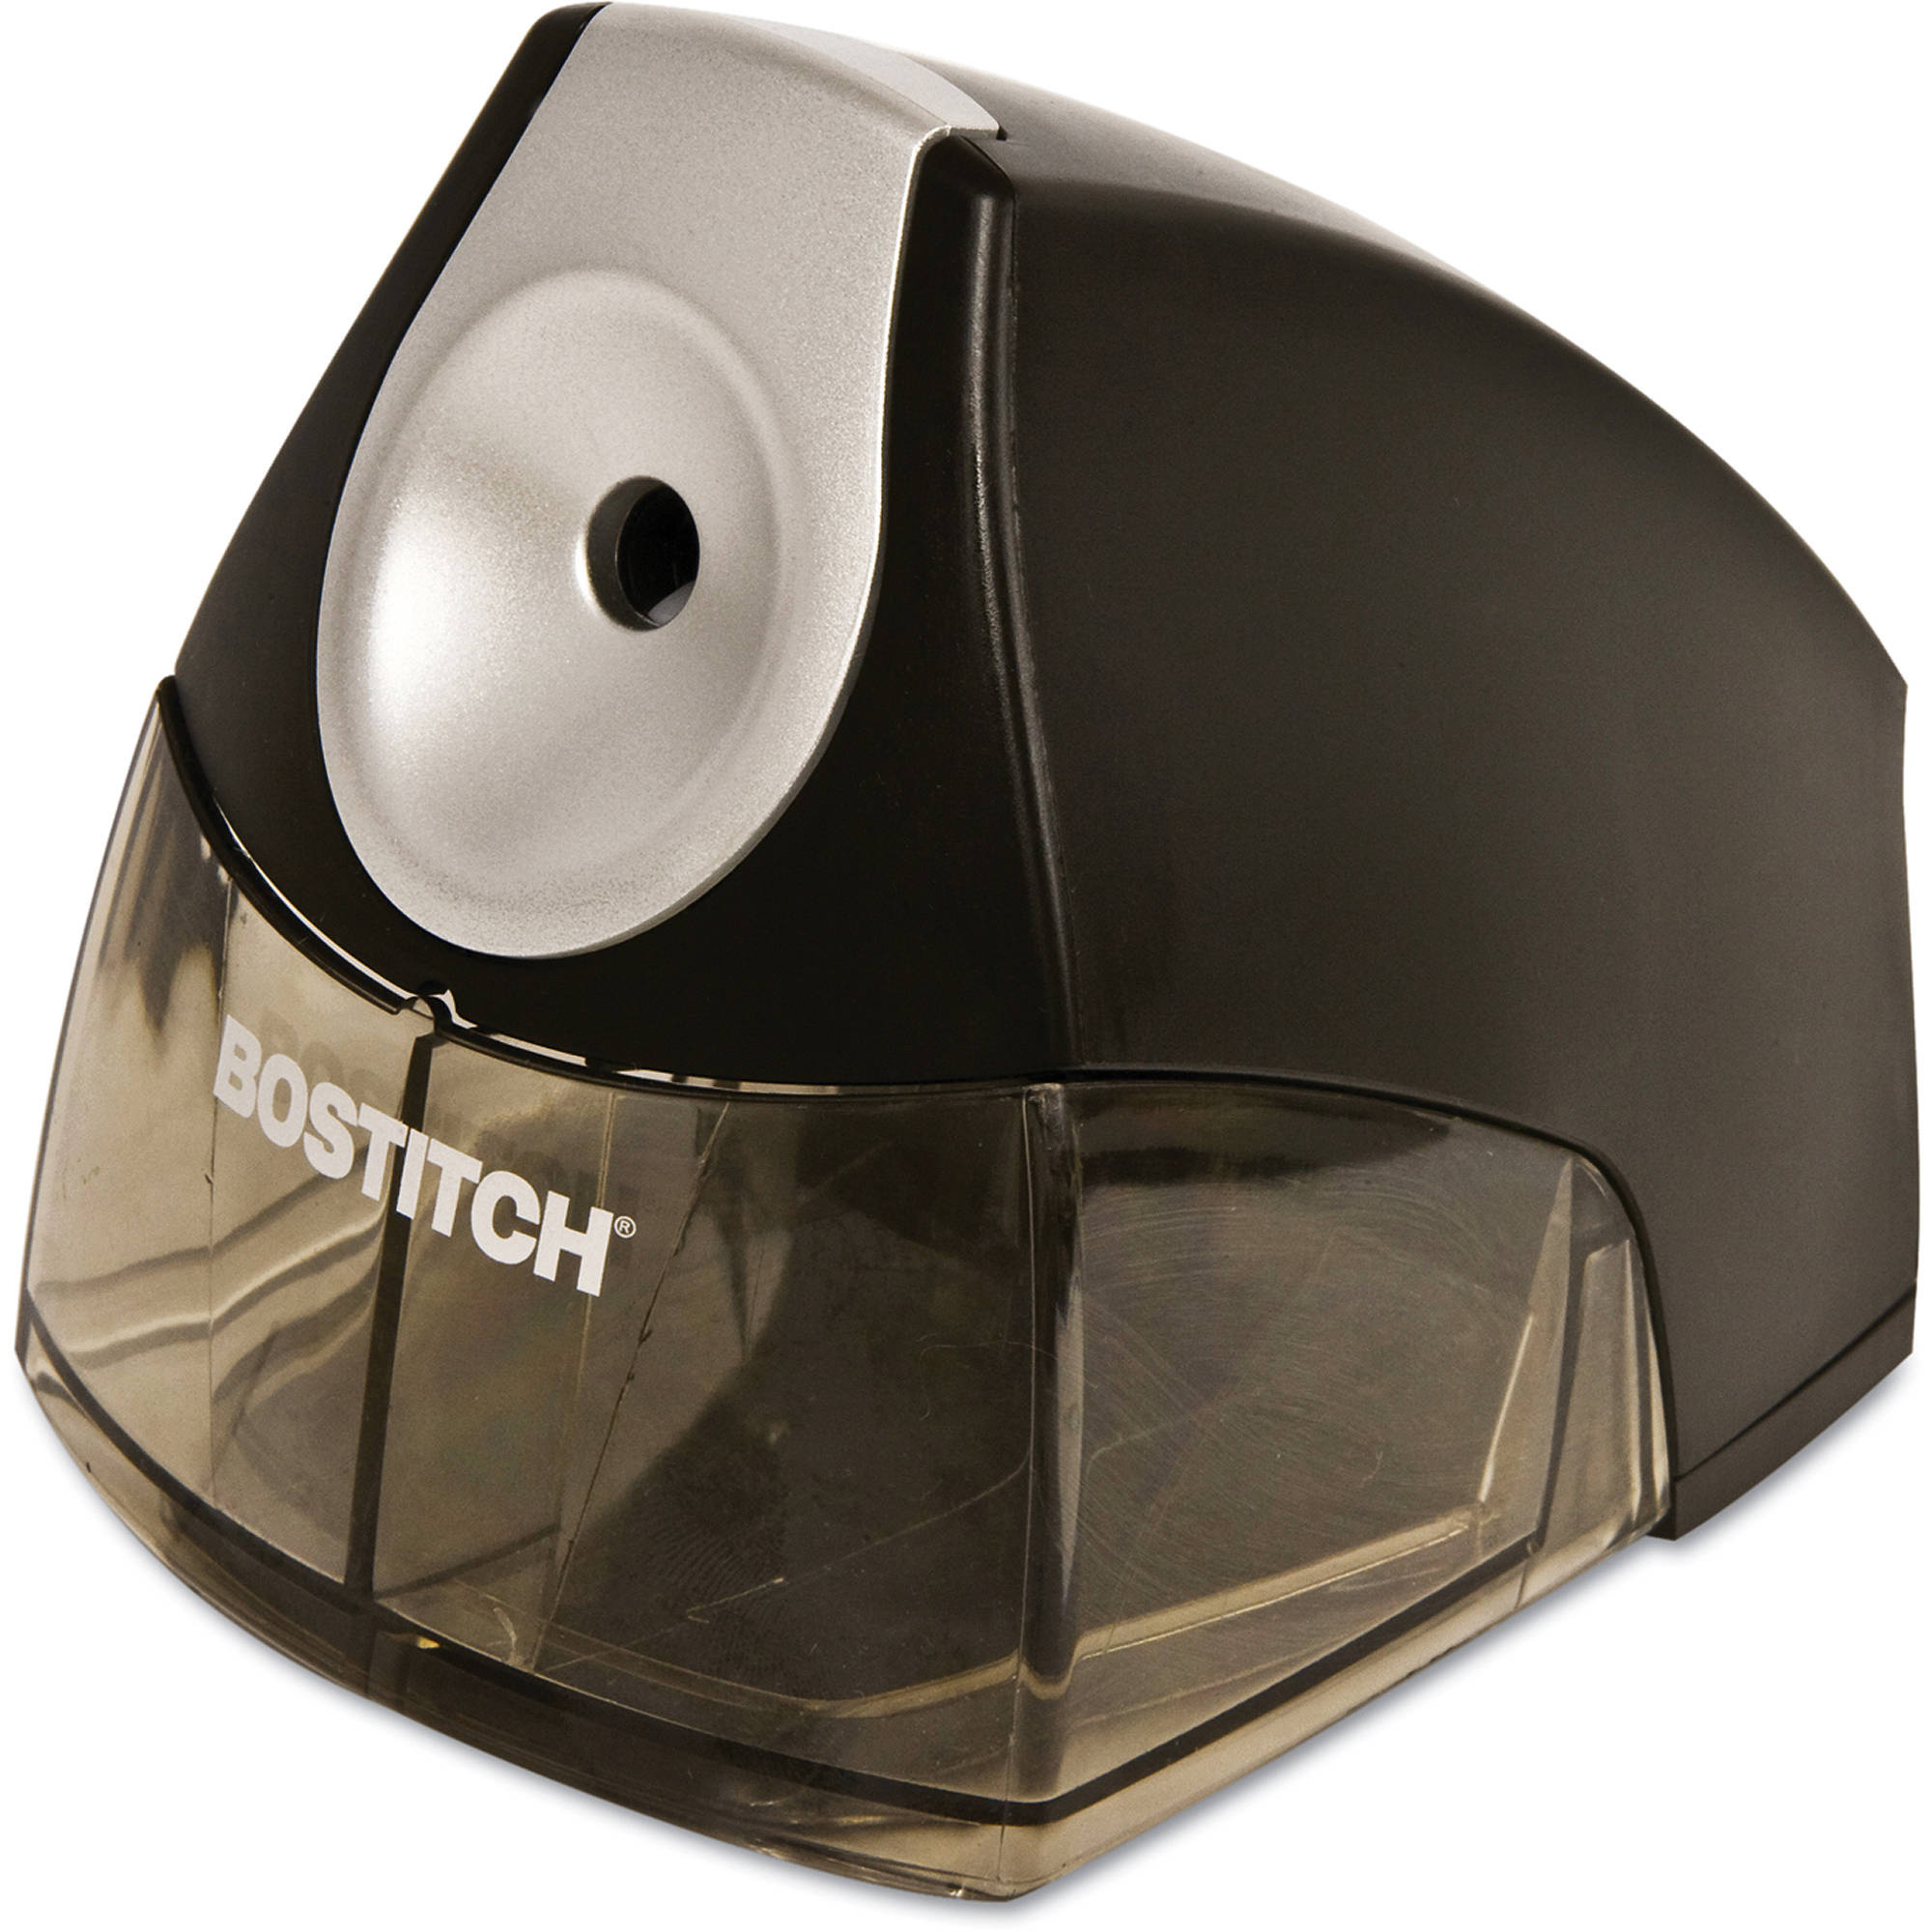 Stanley Bostitch Compact Desktop Electric Pencil Sharpener